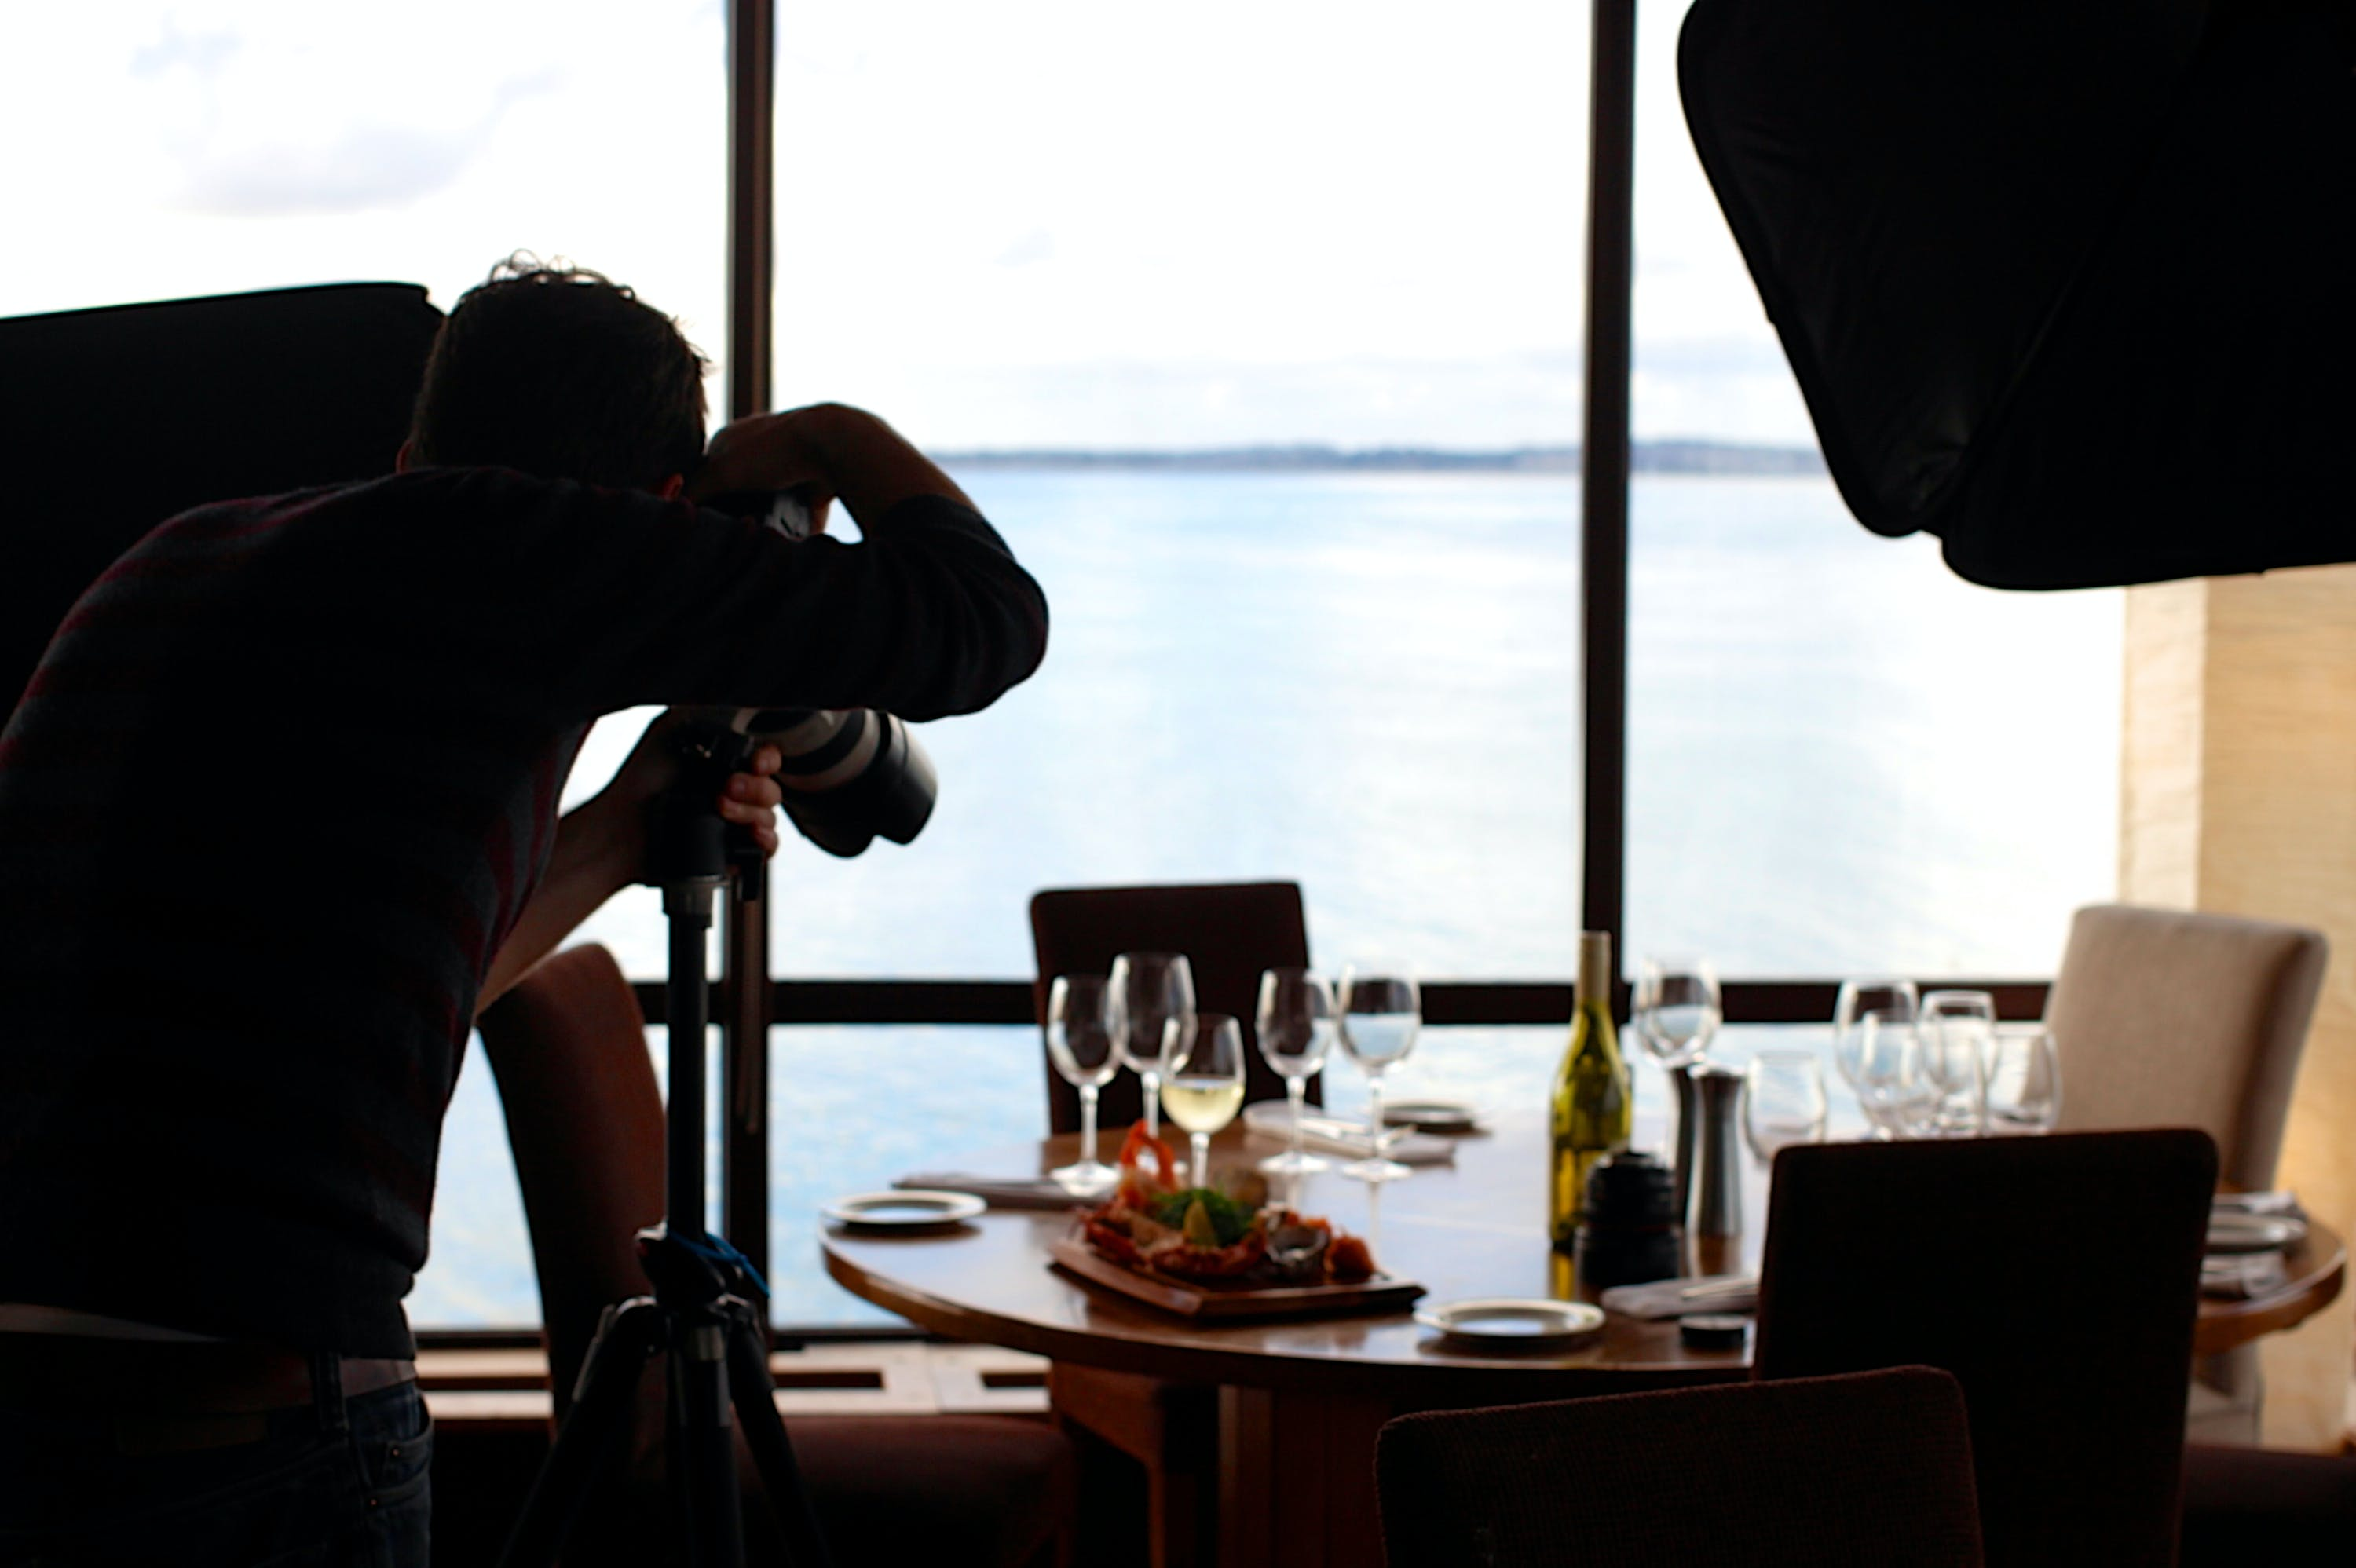 Person Taking Photo to the Wine Glasses